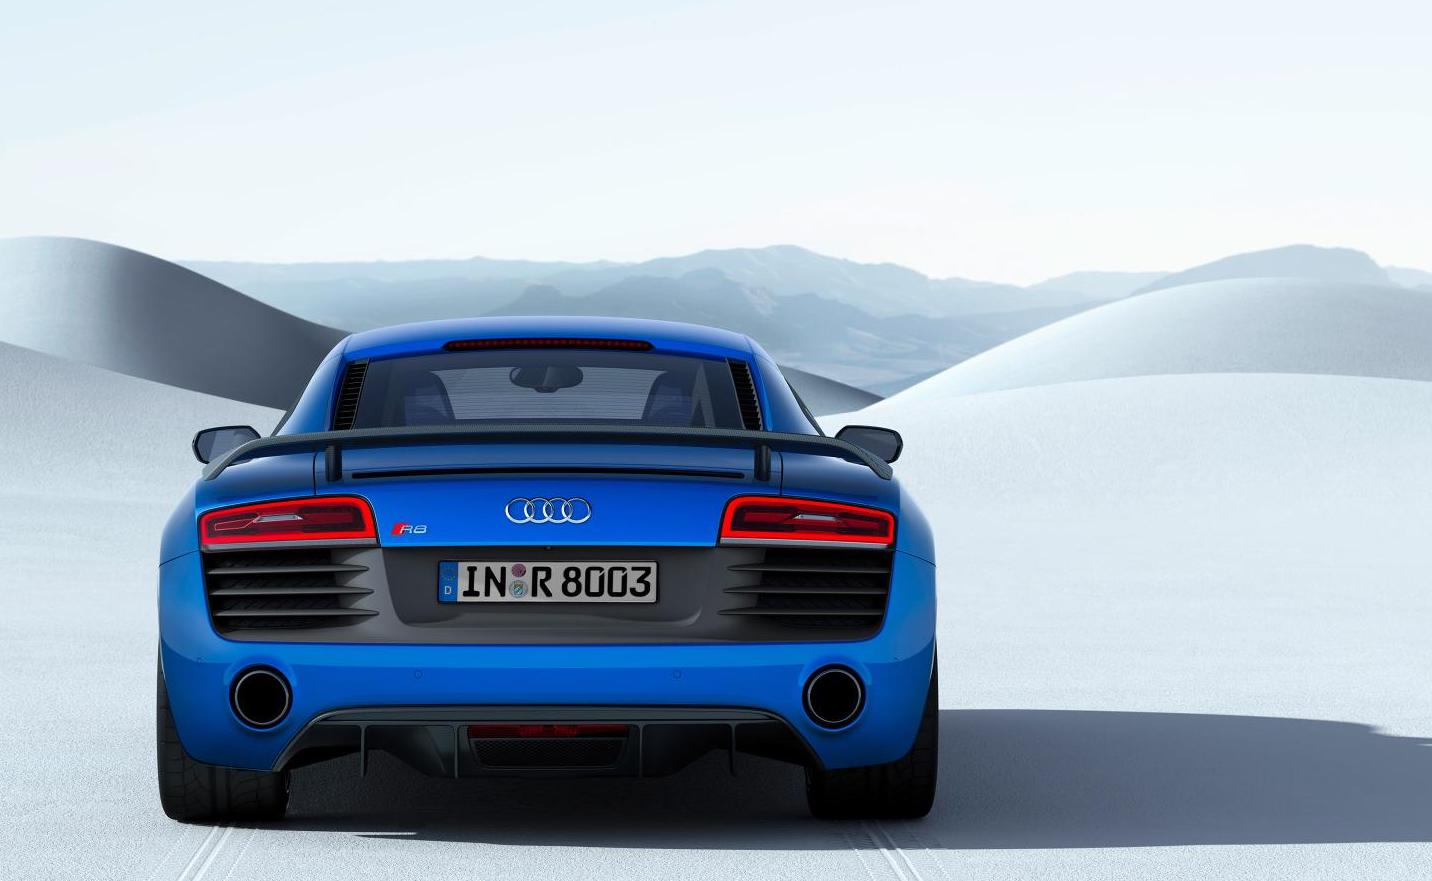 The R8 was one of the first useable day-to-day supercars